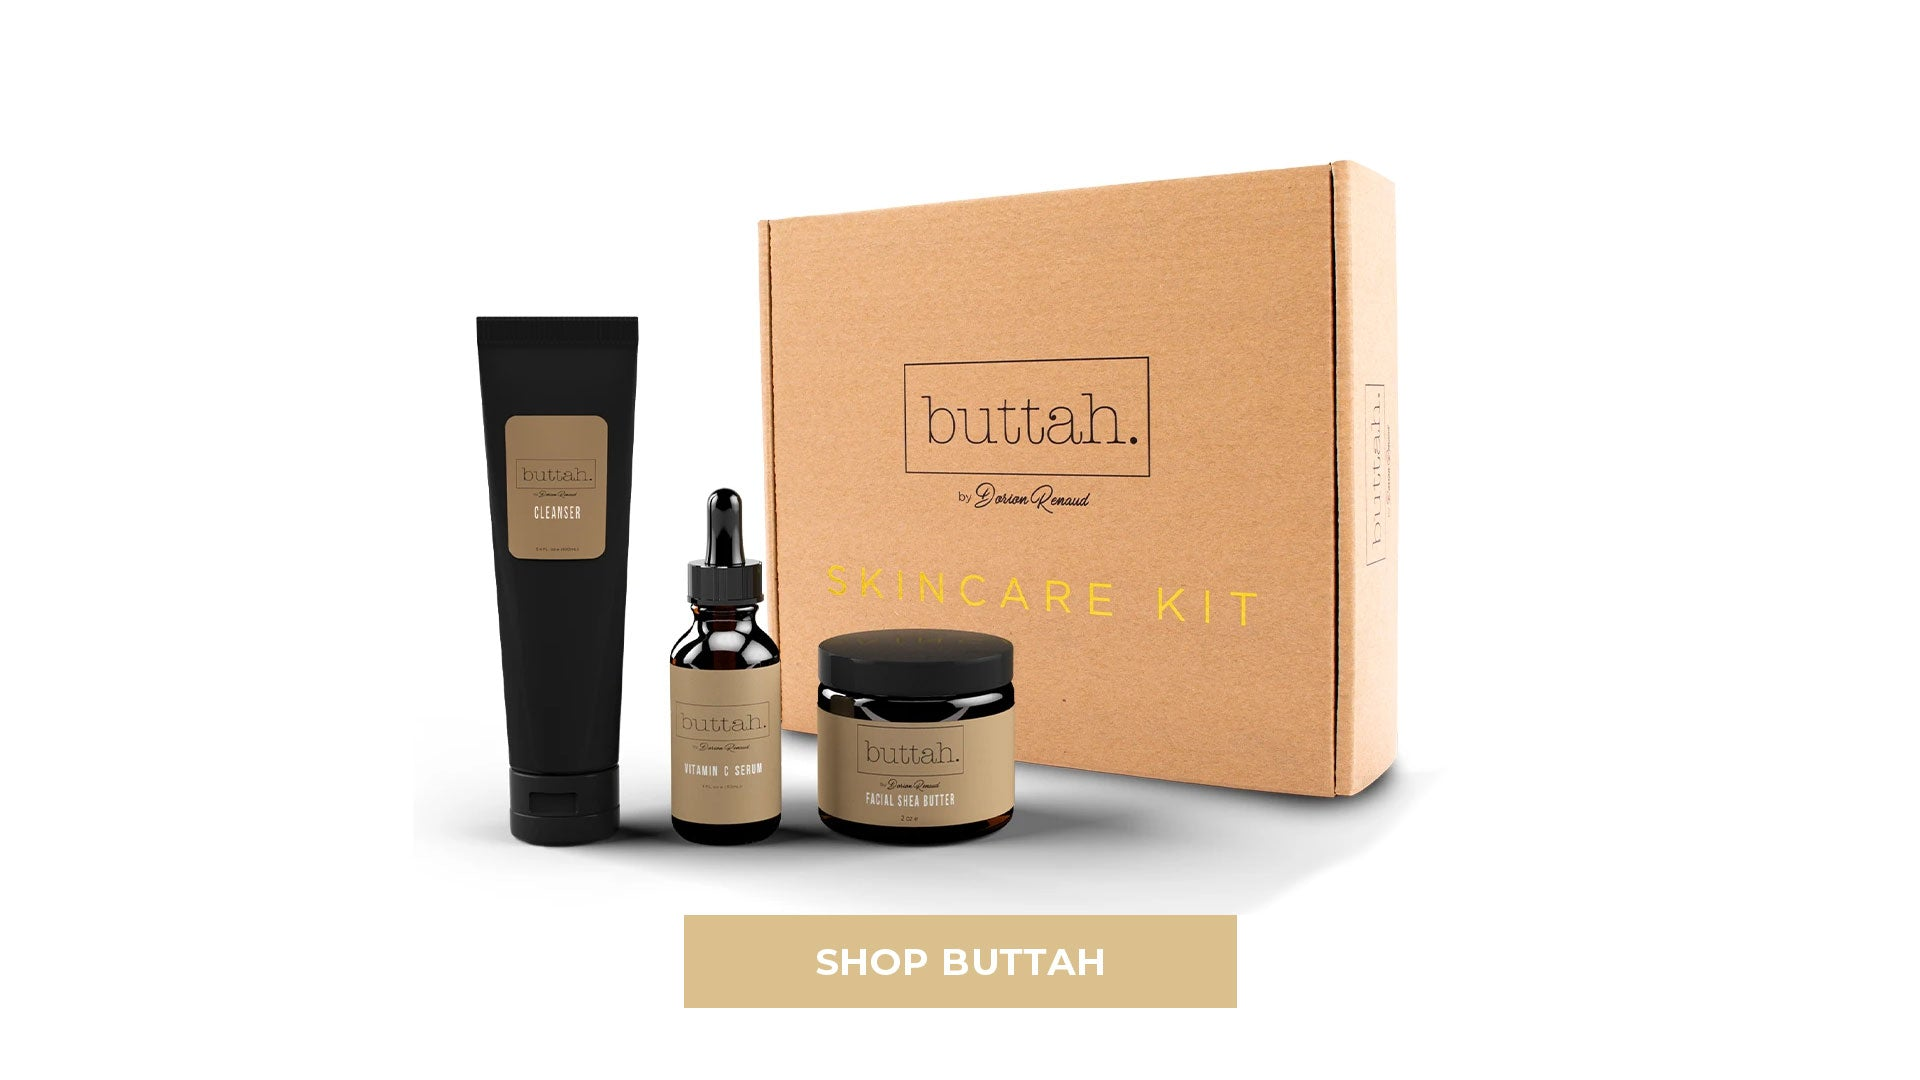 Shop Buttah Skin Kit Cleanser Shea Butter Vitamin C Serum